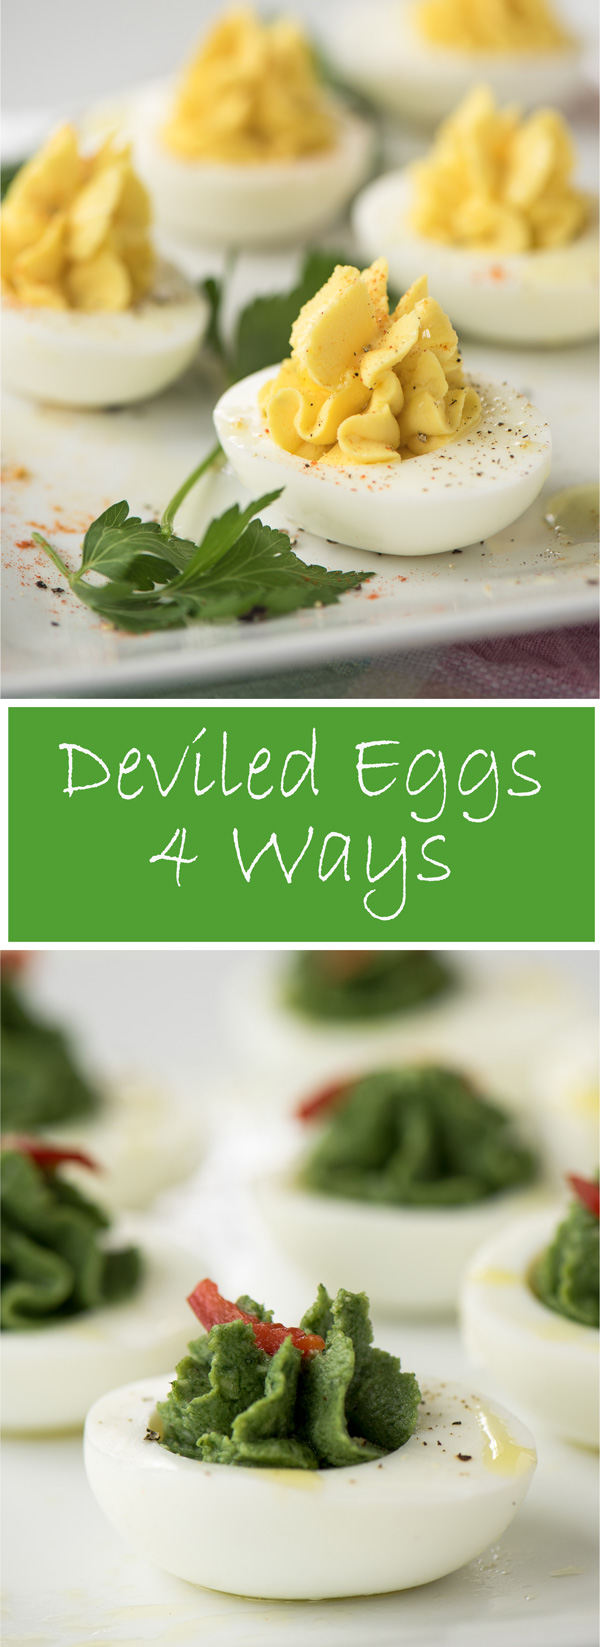 Deviled Eggs, $ Ways. How to make perfect deviled eggs with recipes for 4 variations, Cornichon Deviled Eggs, Truffle Deviled Eggs, Spinach Deviled Eggs and Traditional Deviled Eggs.